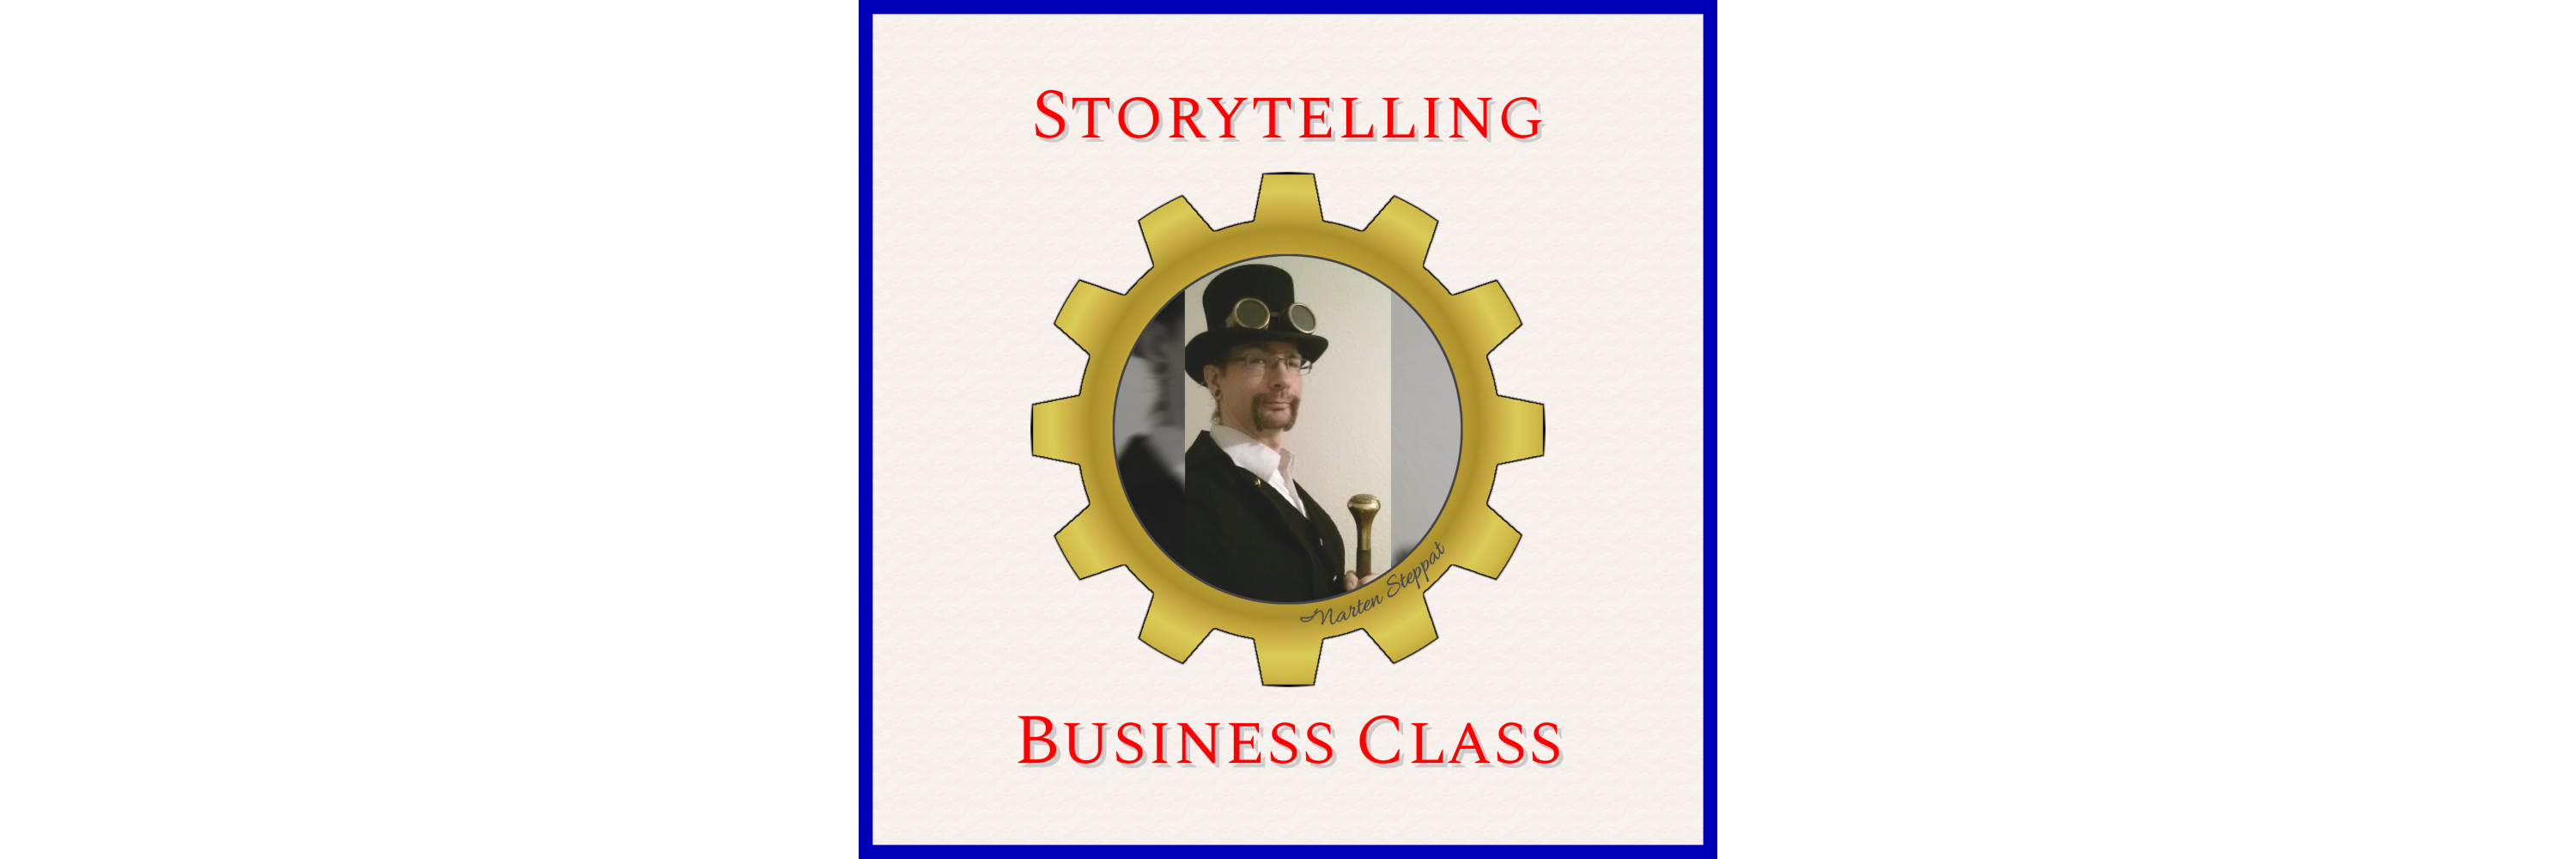 Storytelling Business Class